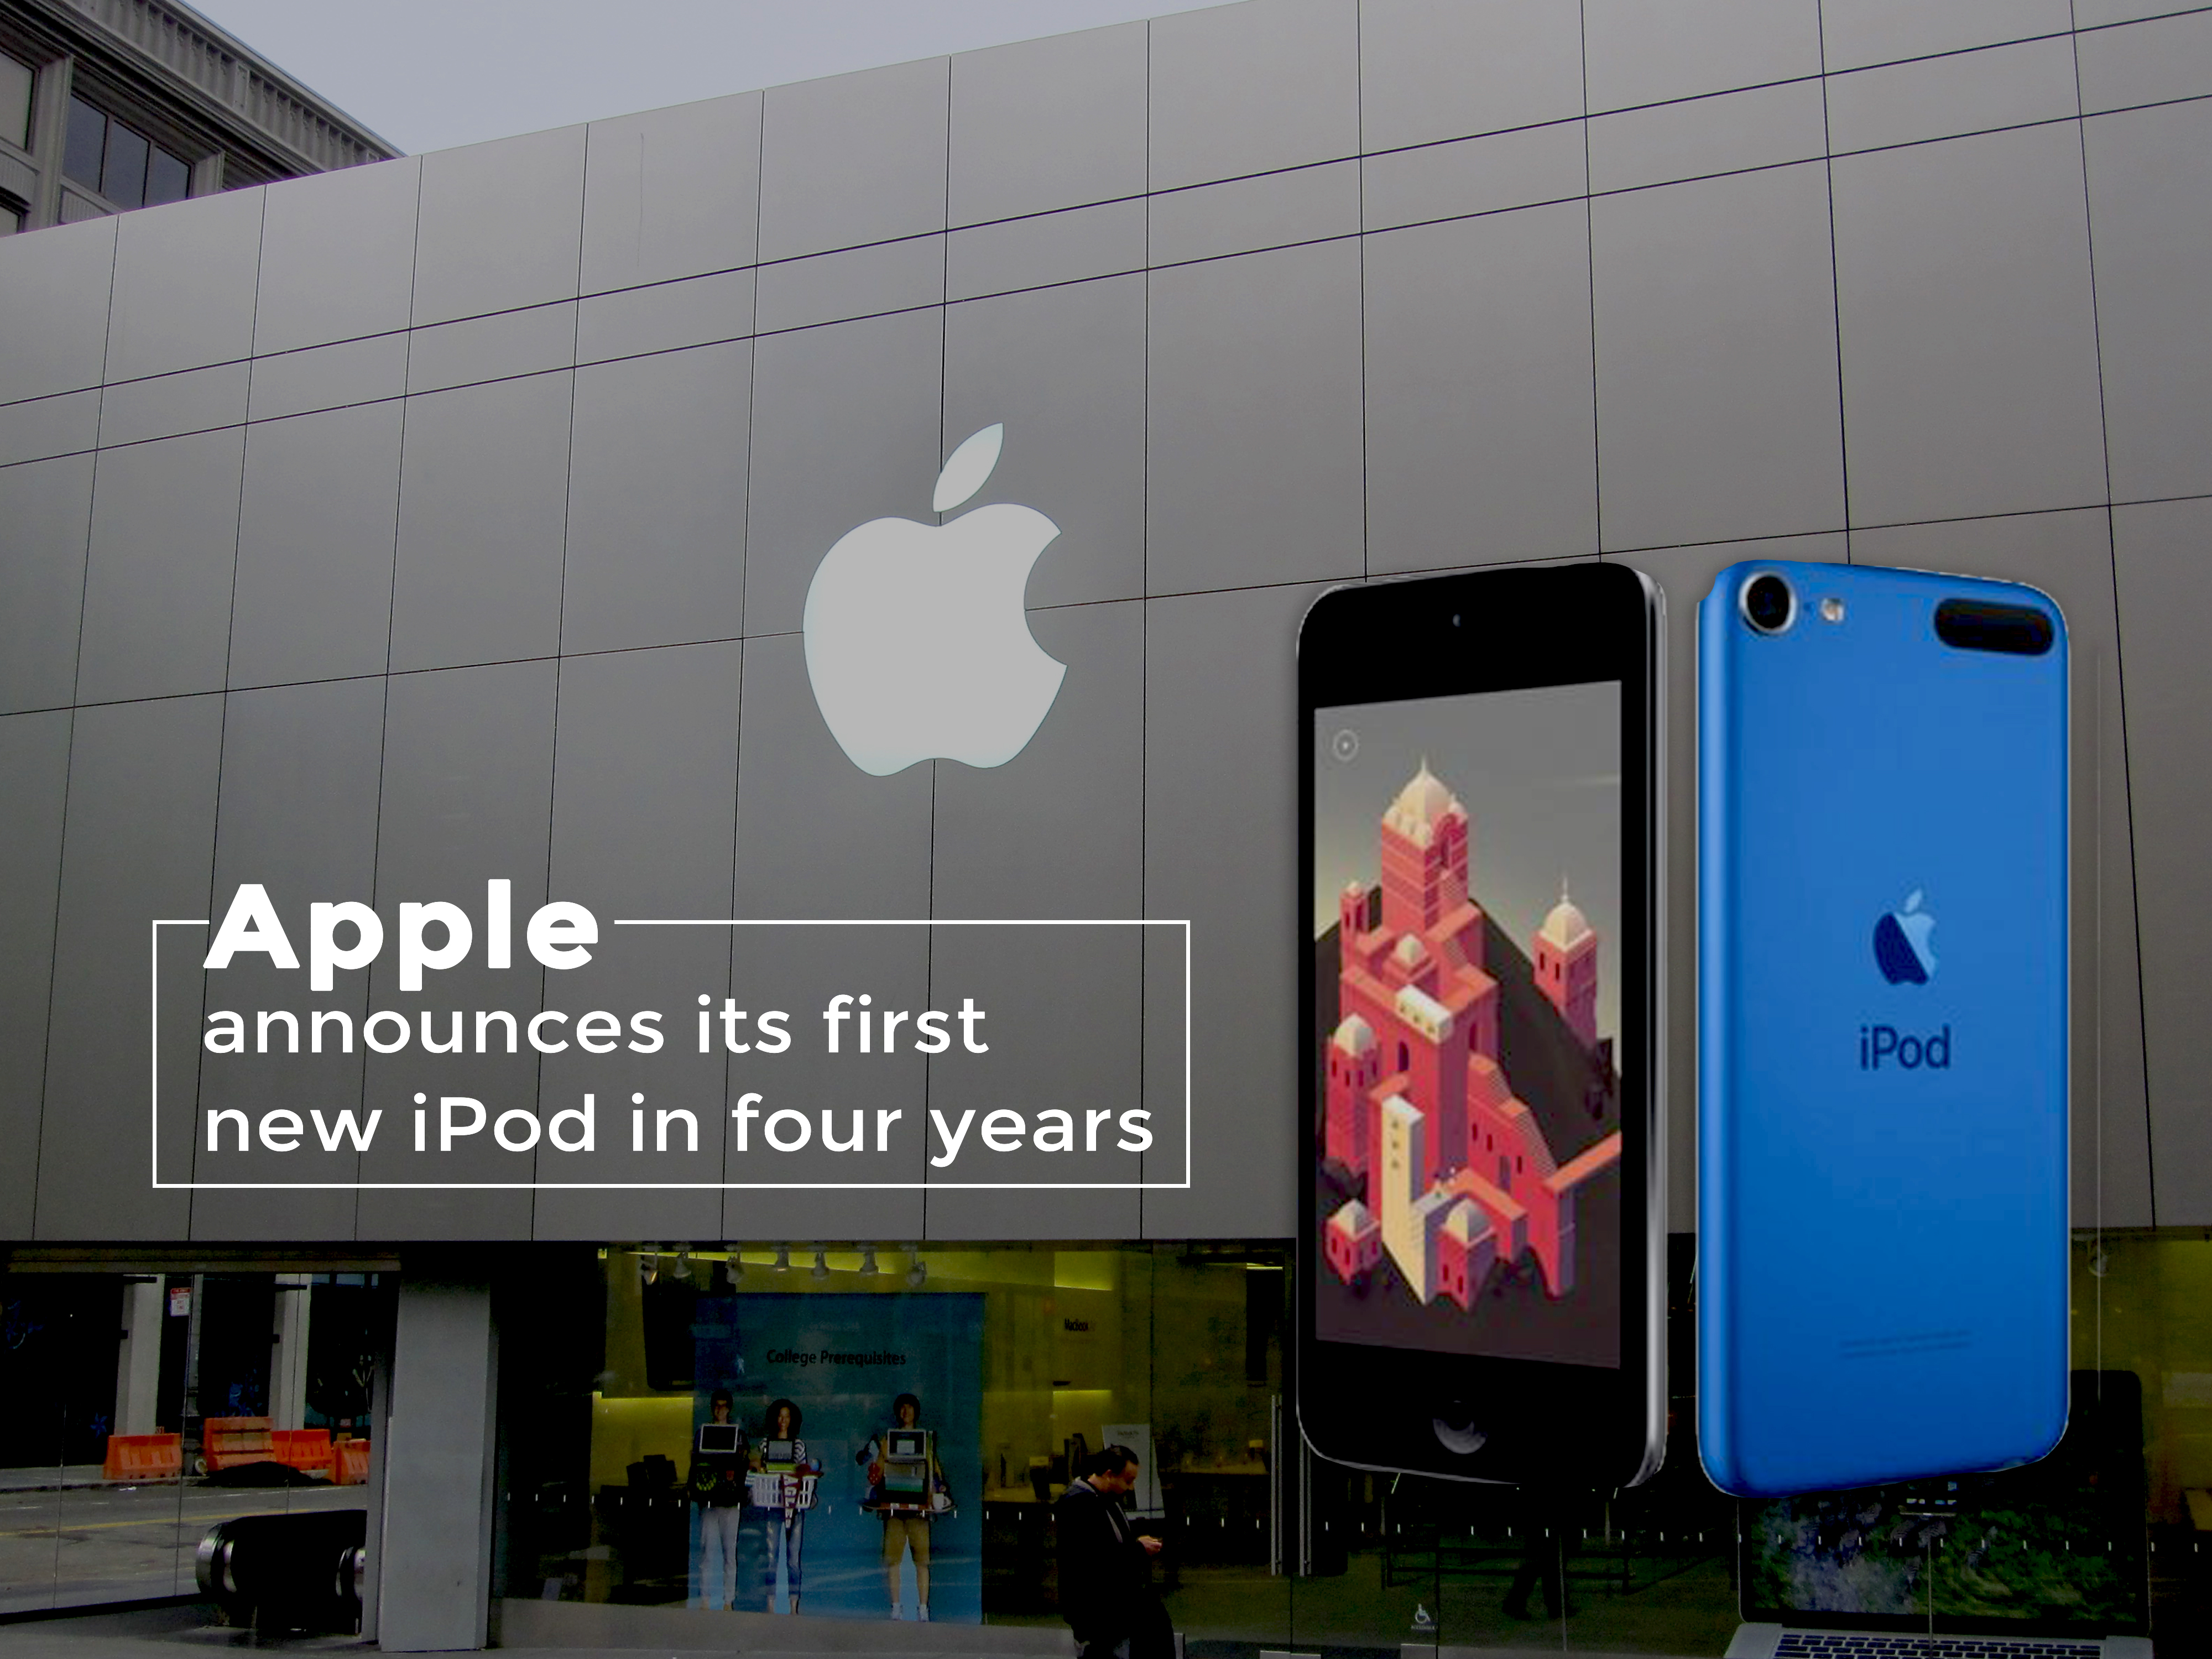 In Last Four Years Apple Announces its First New iPod